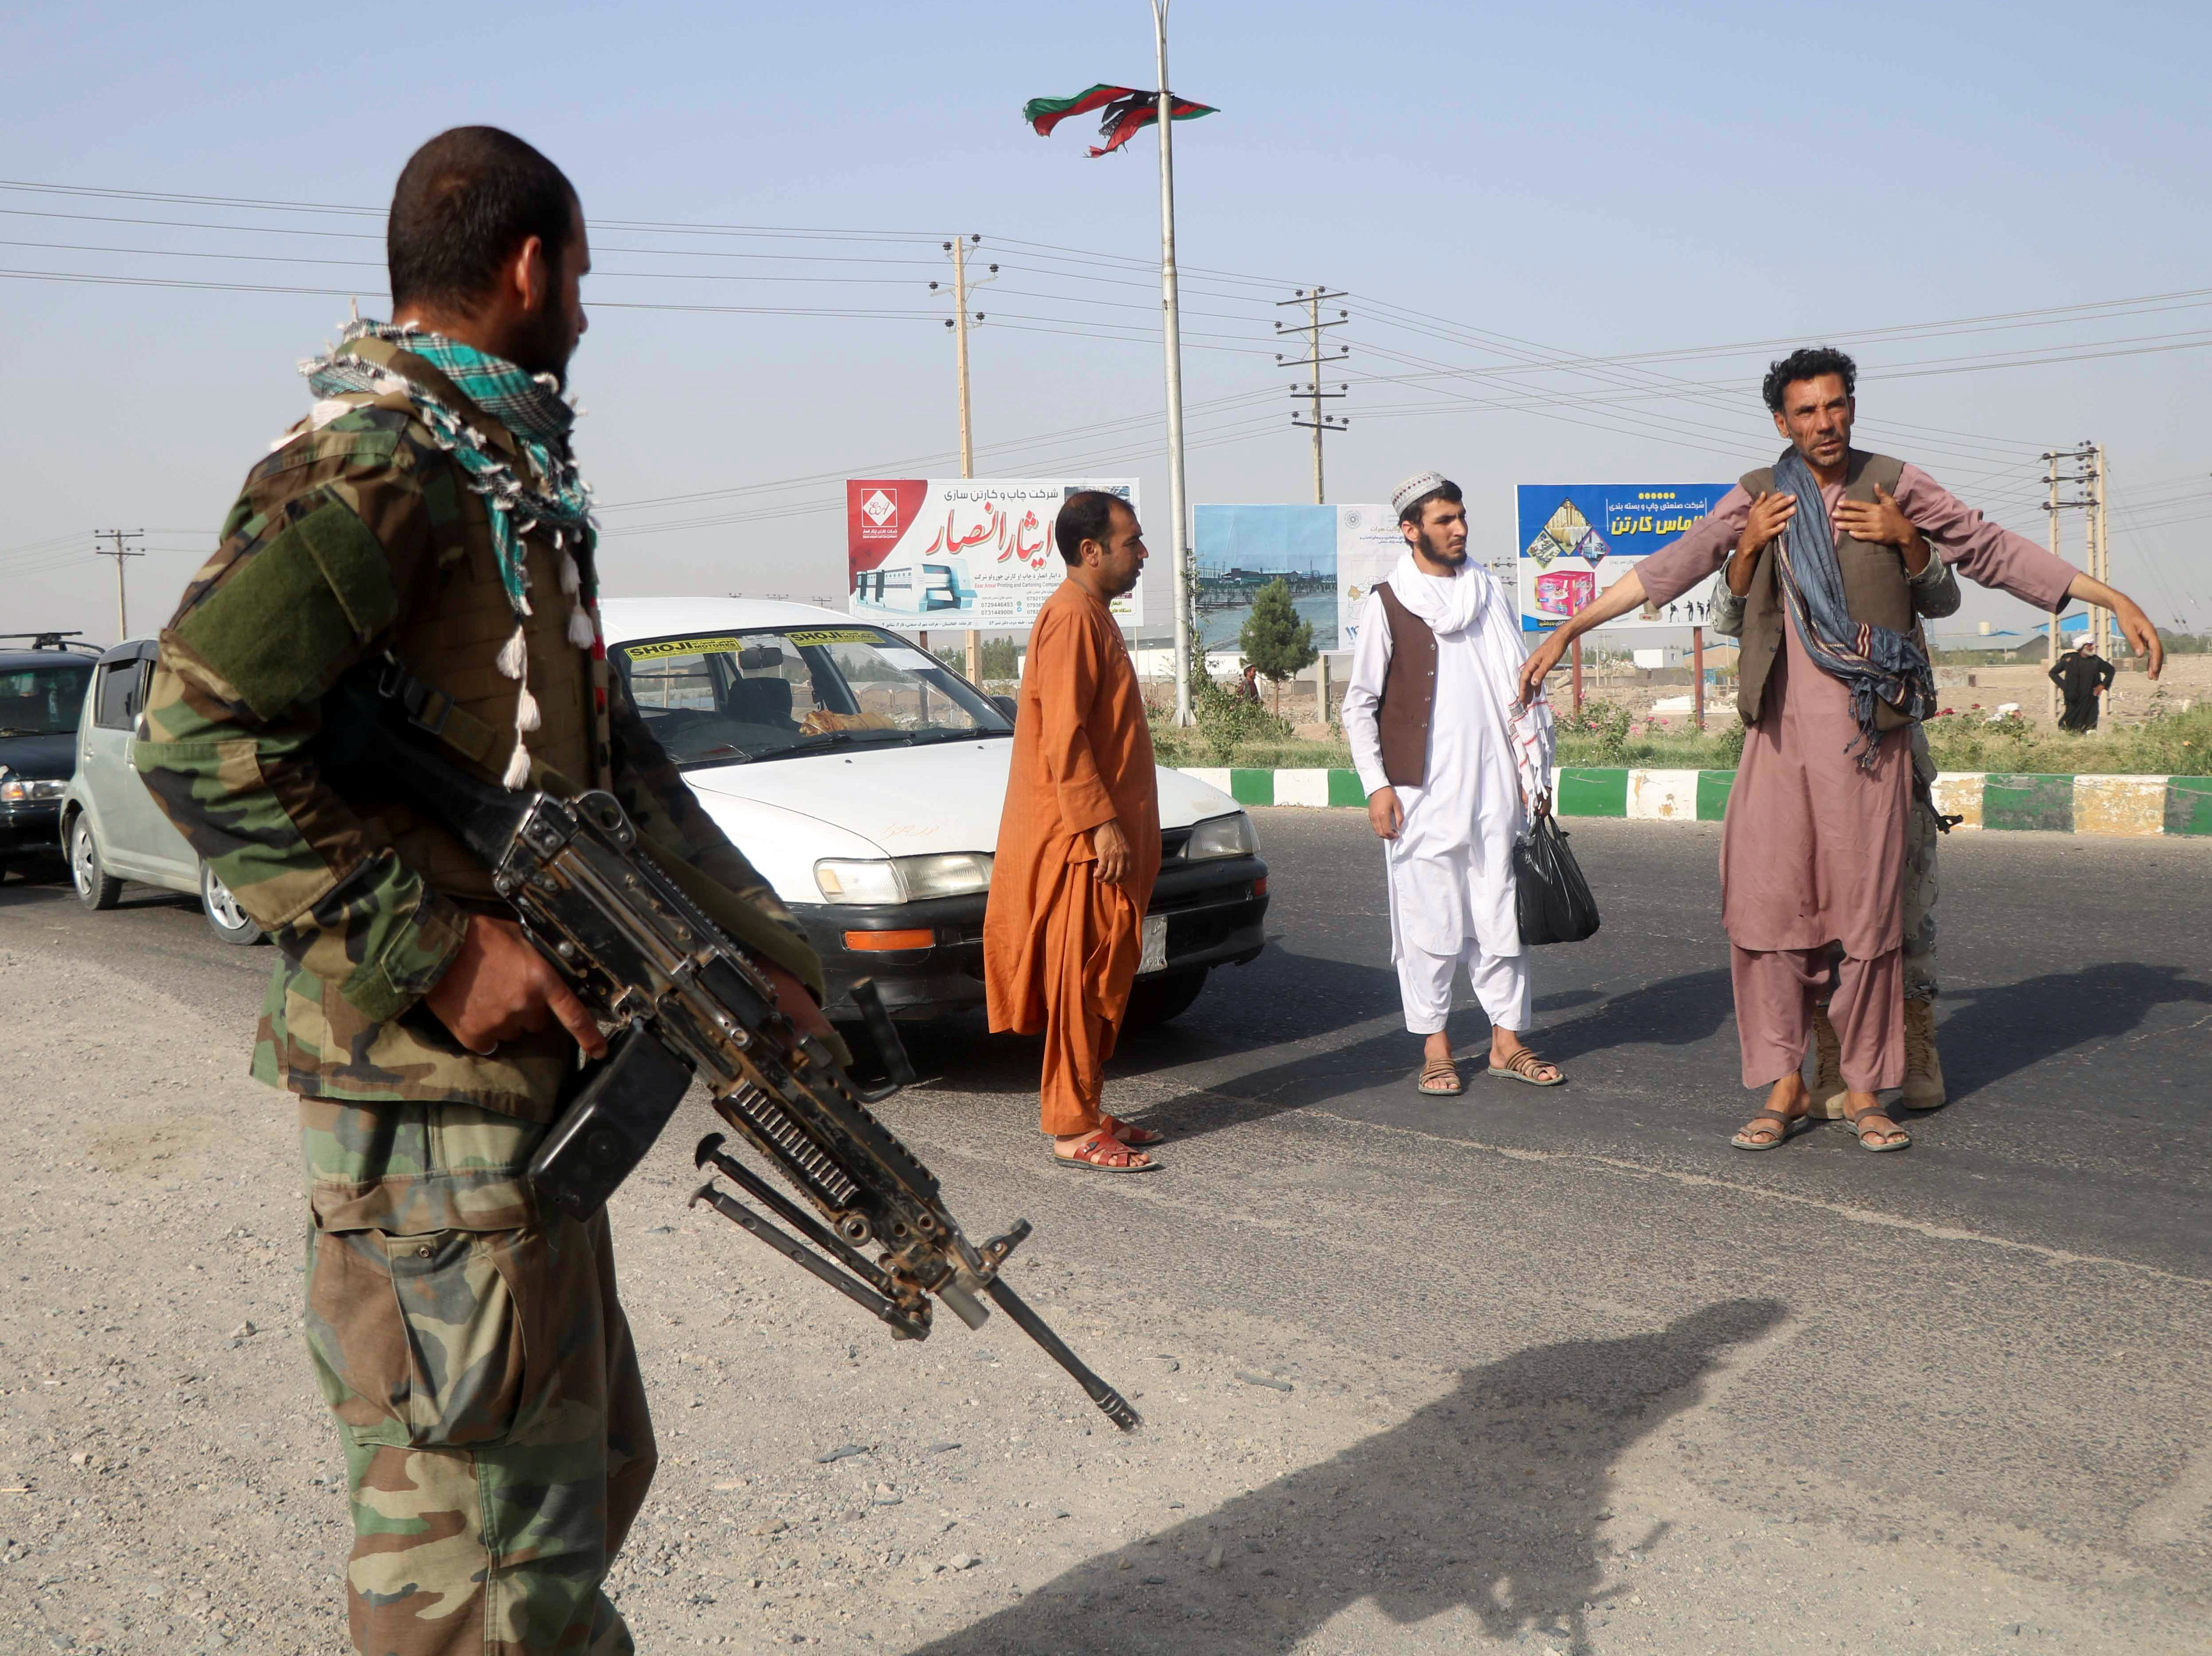 An Afghan National Army (ANA) soldier searches a man at a checkpoint in the Guzara district of Herat province, Afghanistan July 9, 2021. REUTERS/Jalil Ahmad